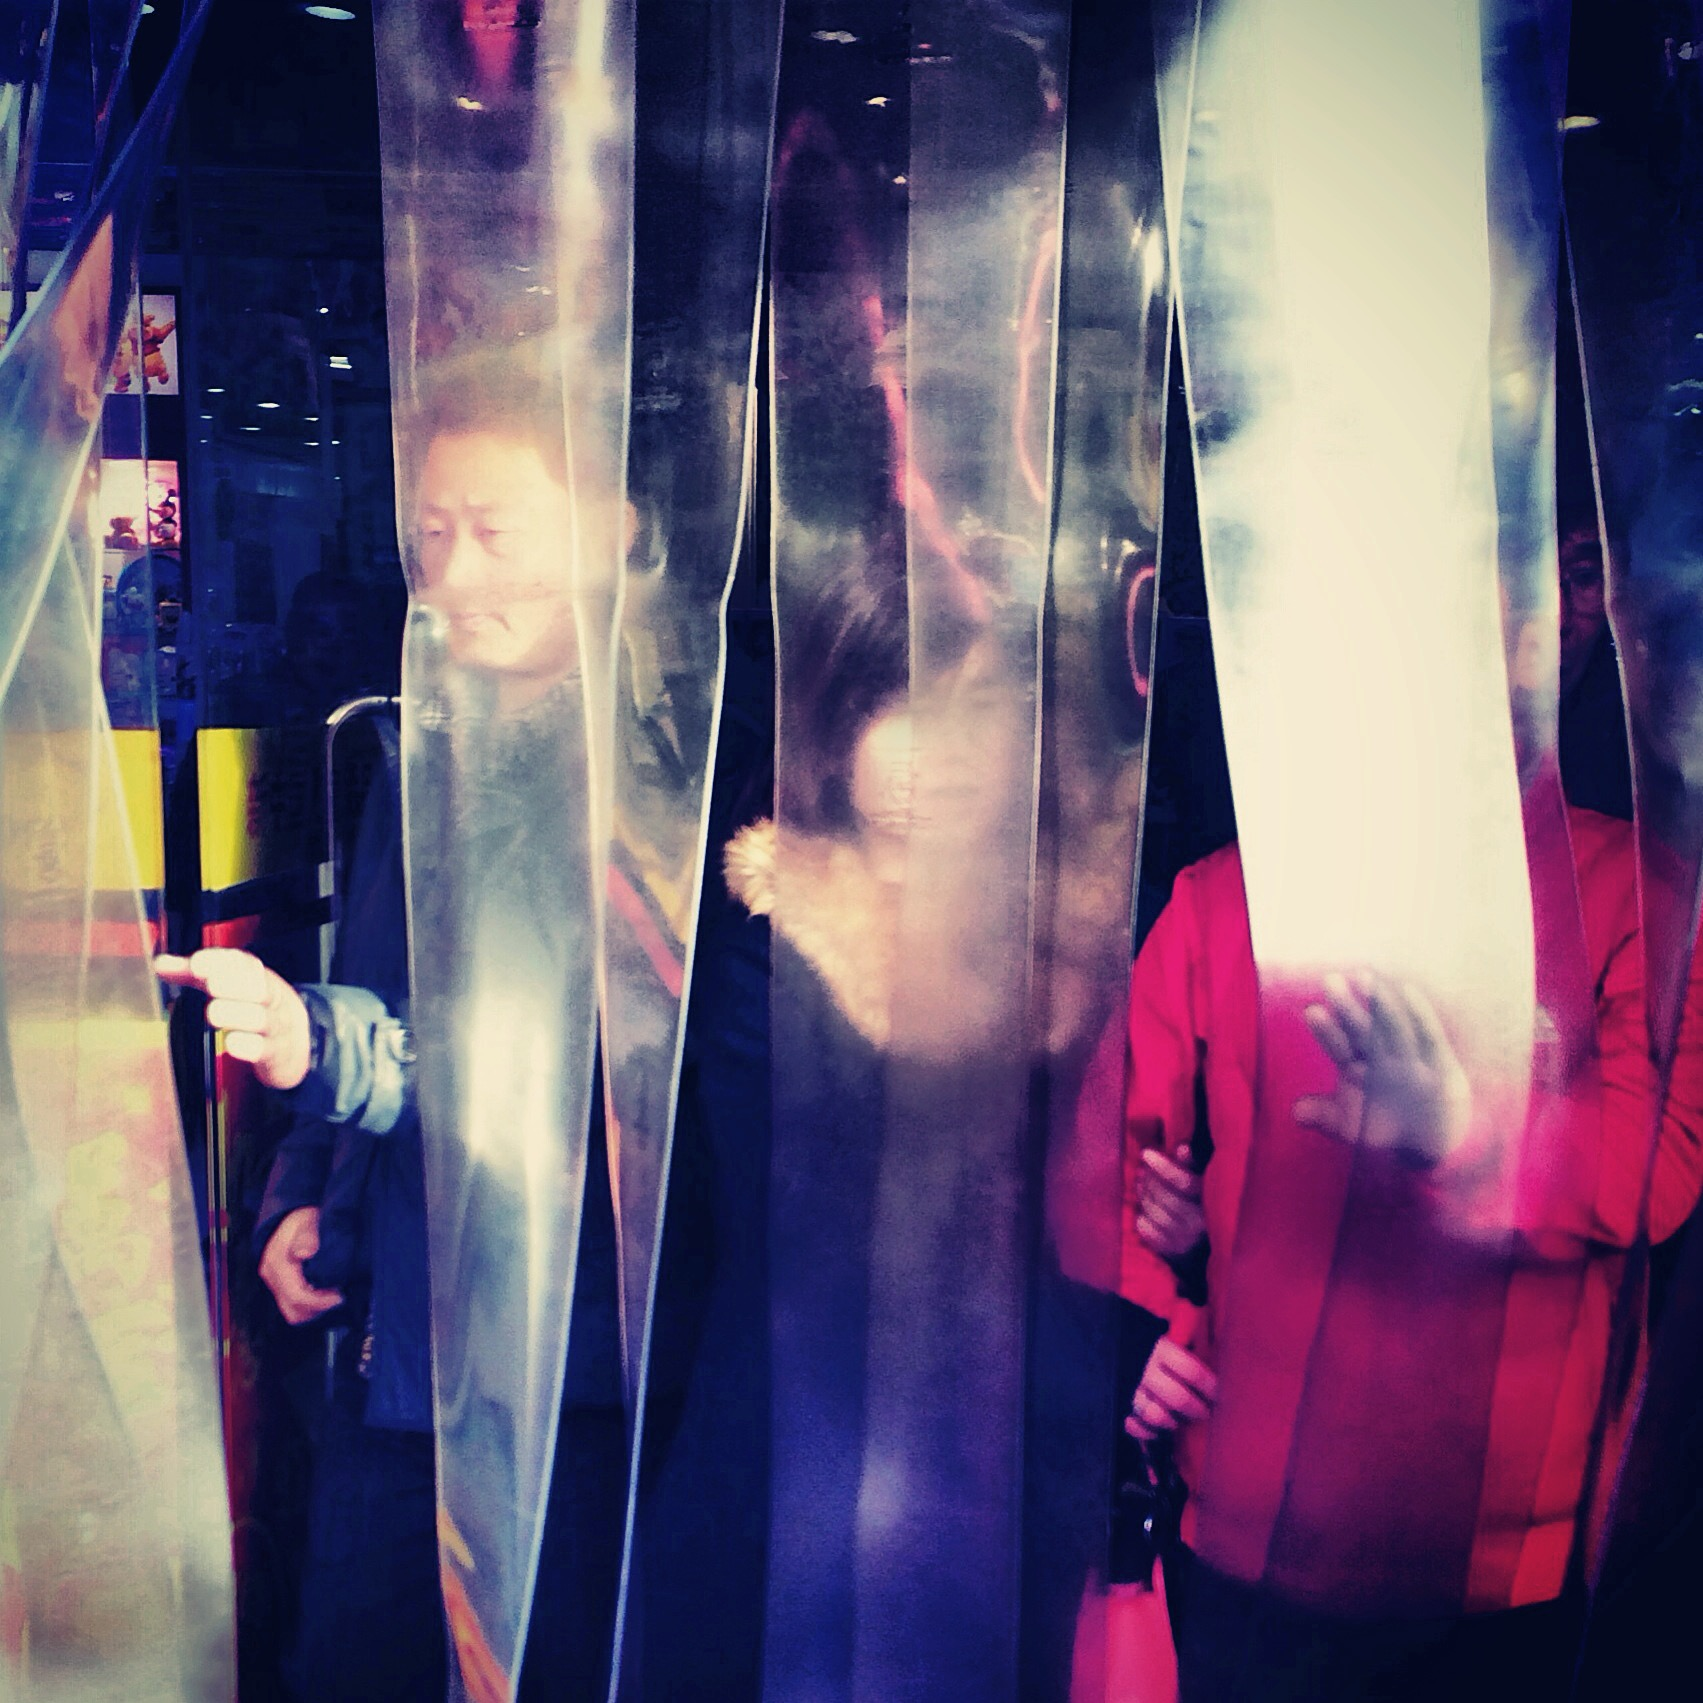 People exiting a shopping centre through plastic wind curtains, Beijing.